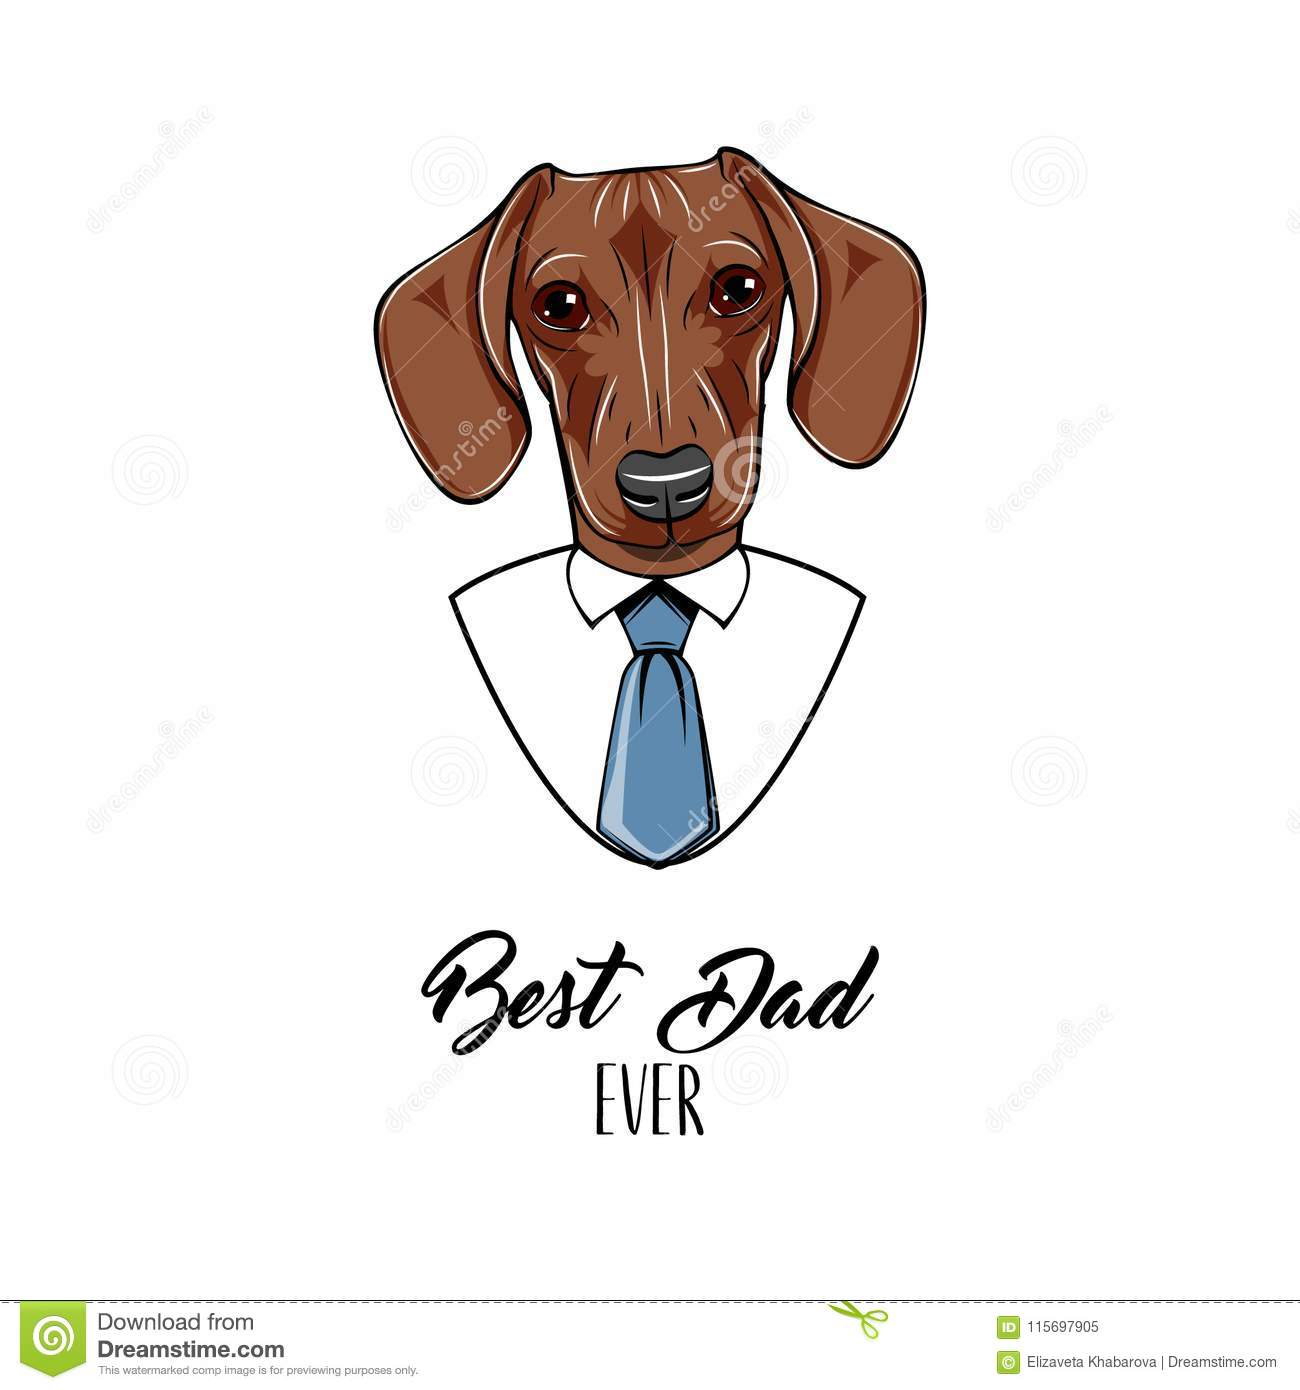 e2b3d7442 Dachshund dog. Fathers day greeting card. Dachshund wearing in shirt,  Necktie. Best dad ever lettering. Dad gift. Vector.